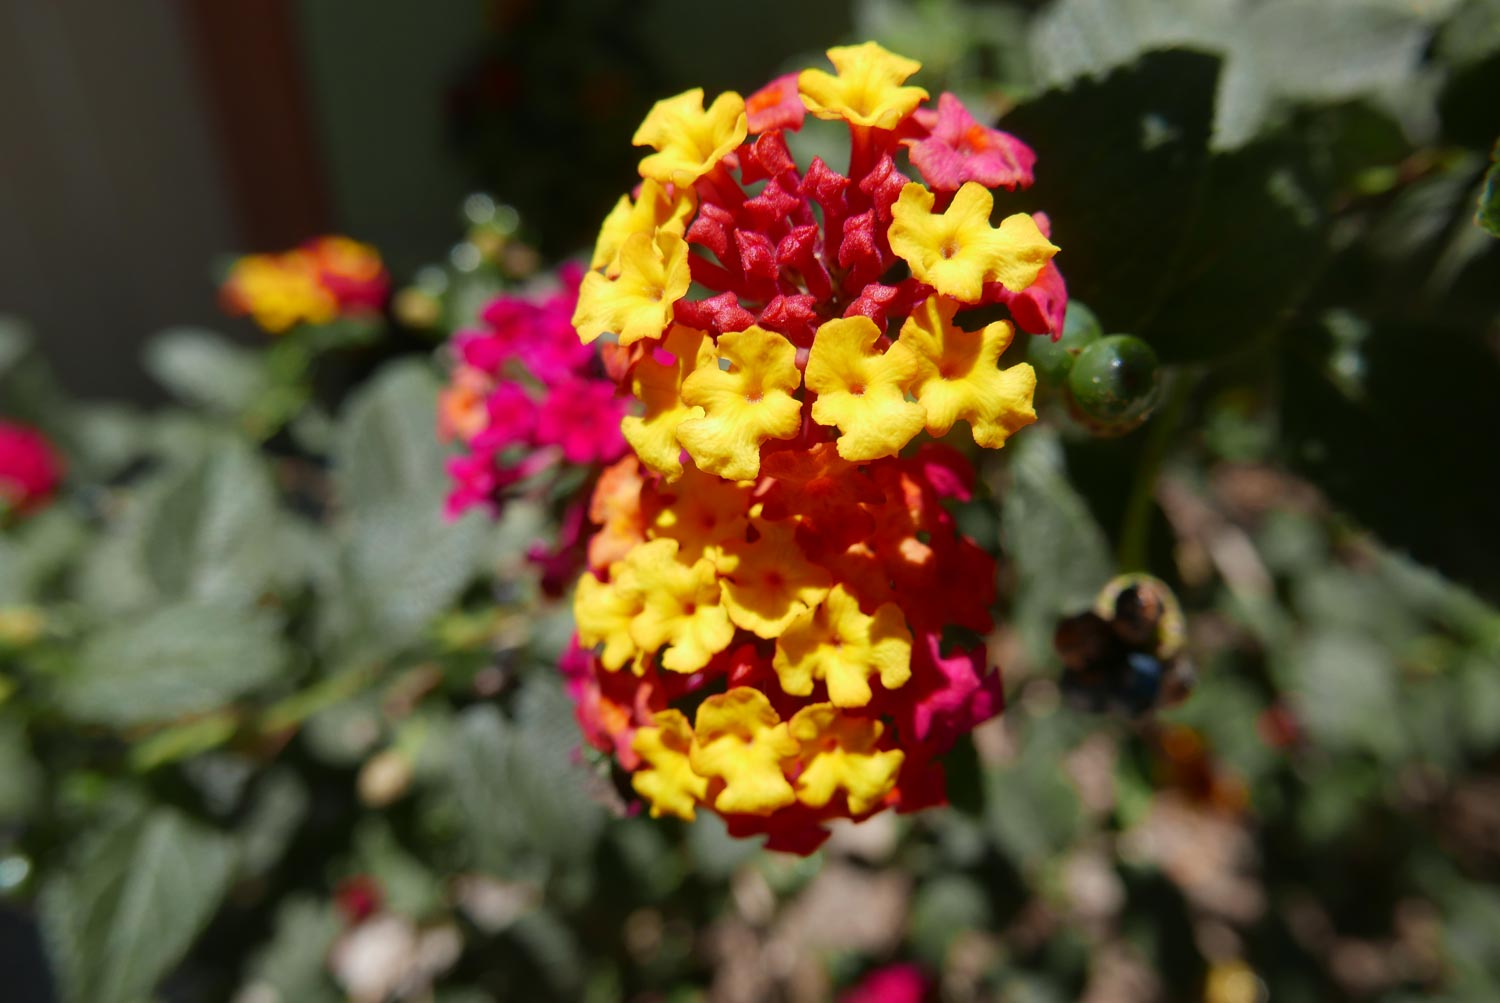 Beautiful red and yellow flower in Santa Elena village, Costa Rica